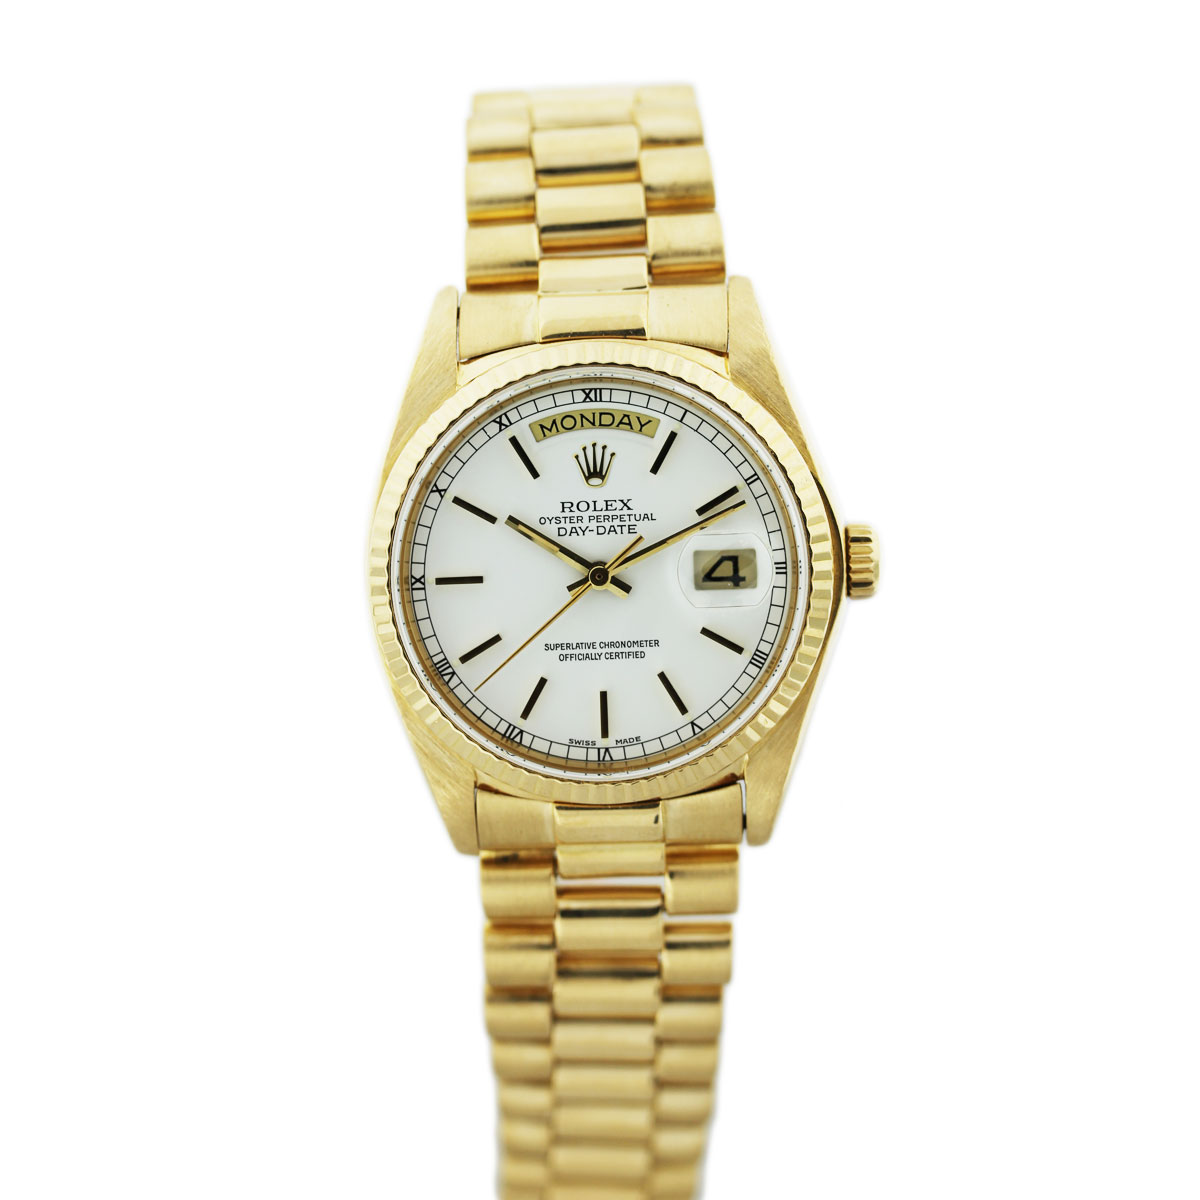 Rolex Datejust White Dial Mens Watch